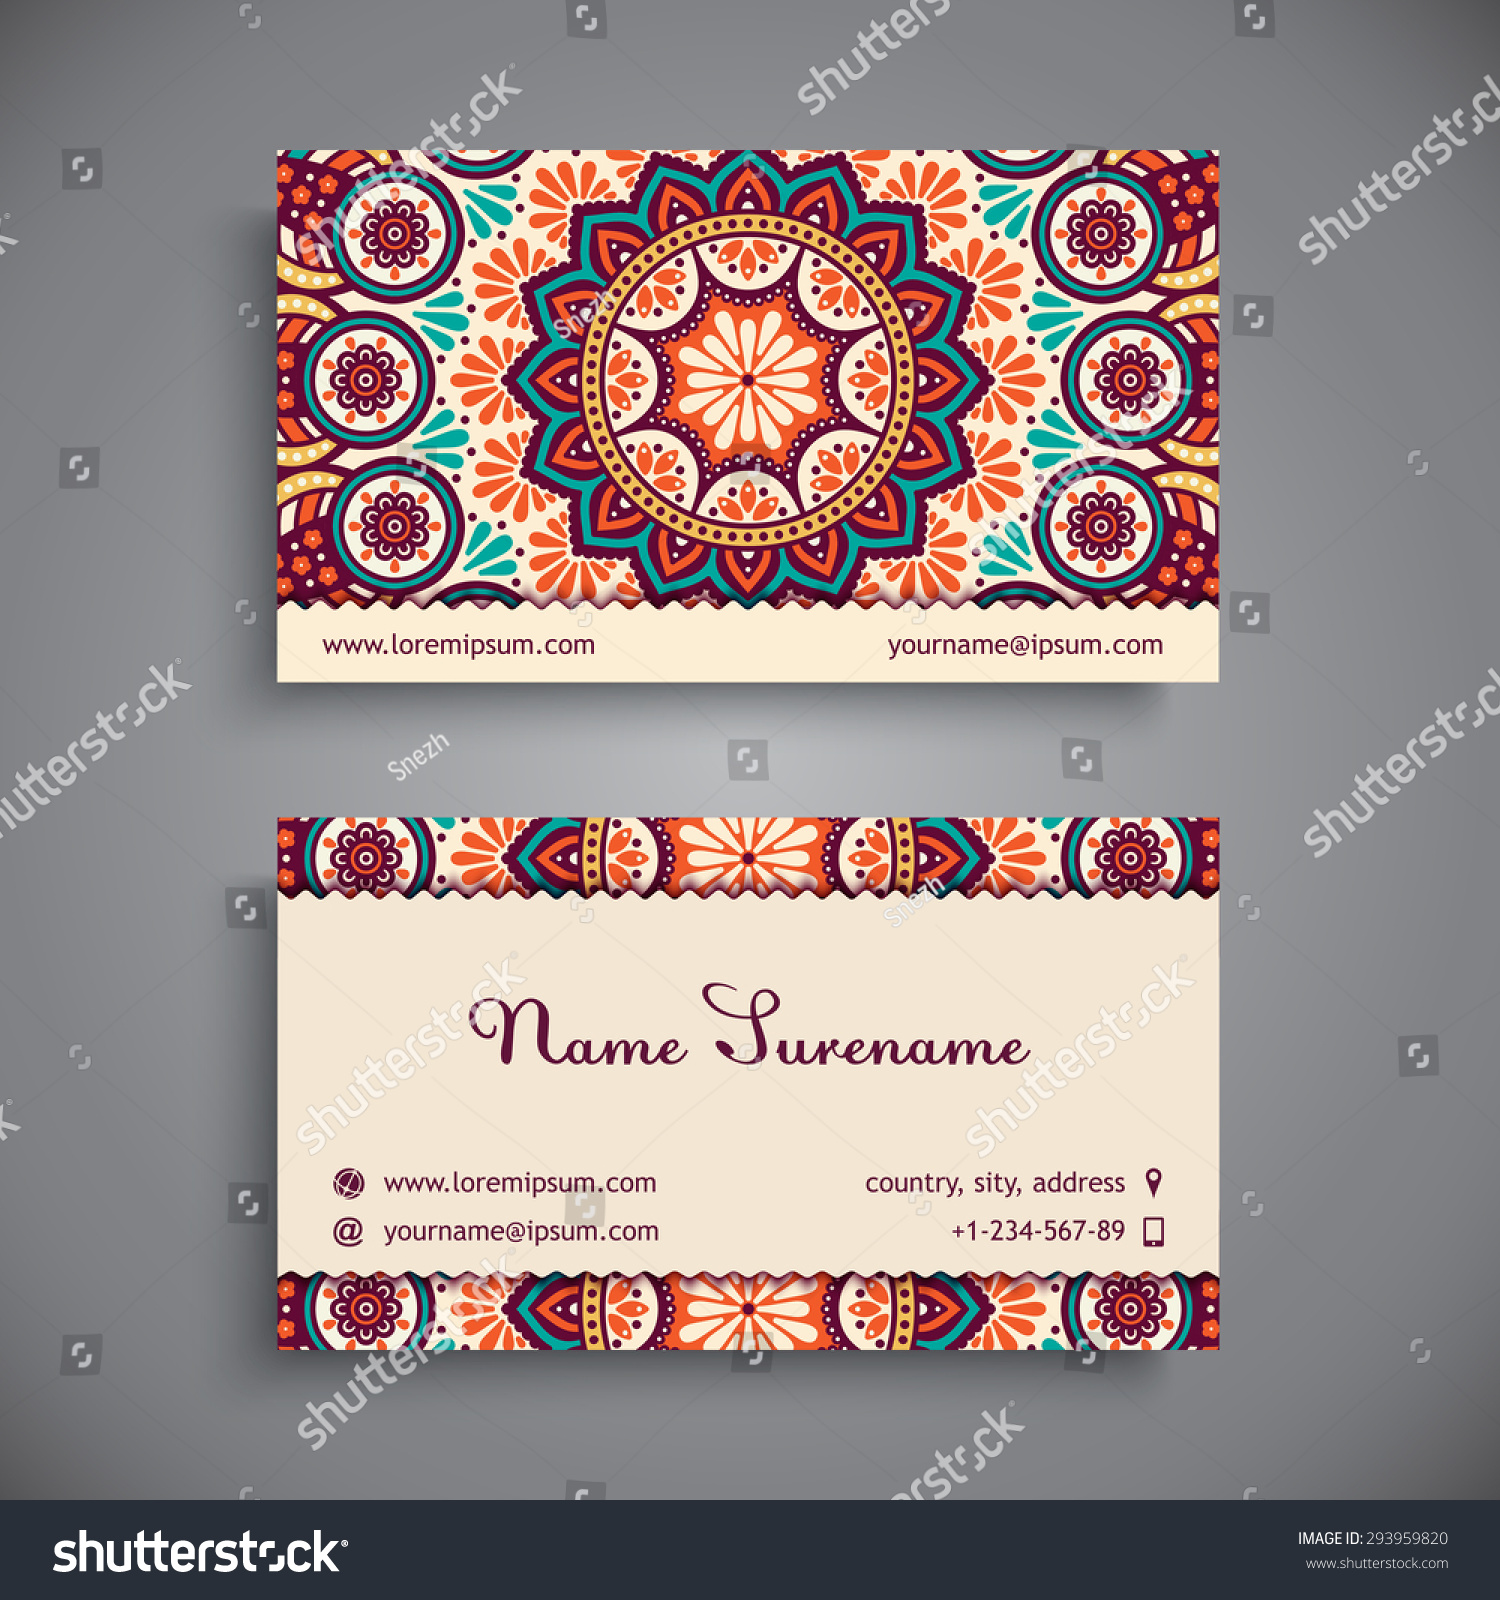 Business Card Vintage Decorative Elements Ornamental Stock Vector ...